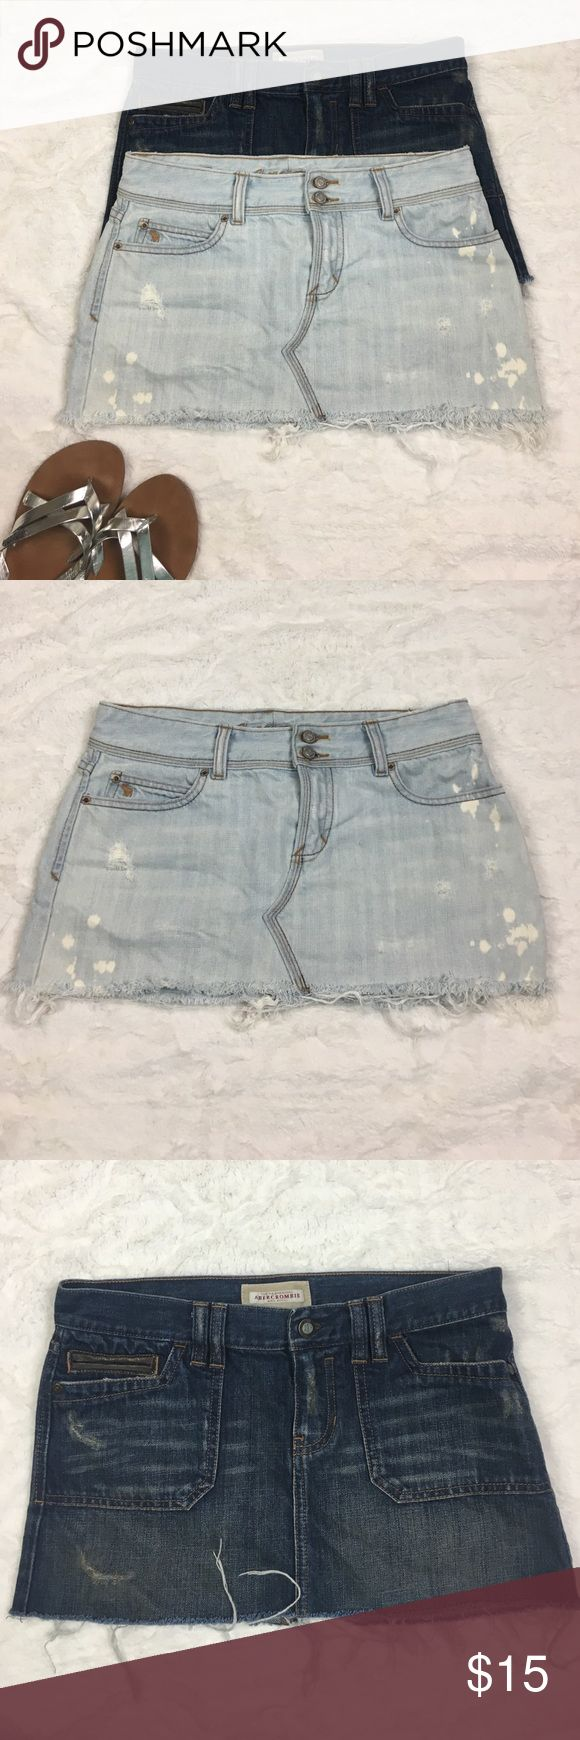 "Abercrombie and Fitch 🦌 Jean Skirts SOLD AS PAIR! Abercrombie and Fitch 🦌 Chic Jean Mini Skirts❤ SOLD AS A PAIR😍 AWSOME DEAL💕 Gently used , no flaws✨ See photos for exact detail! Measurements are the same on both skirts! Waist-15"" Length-12"" Abercrombie & Fitch Skirts Mini"